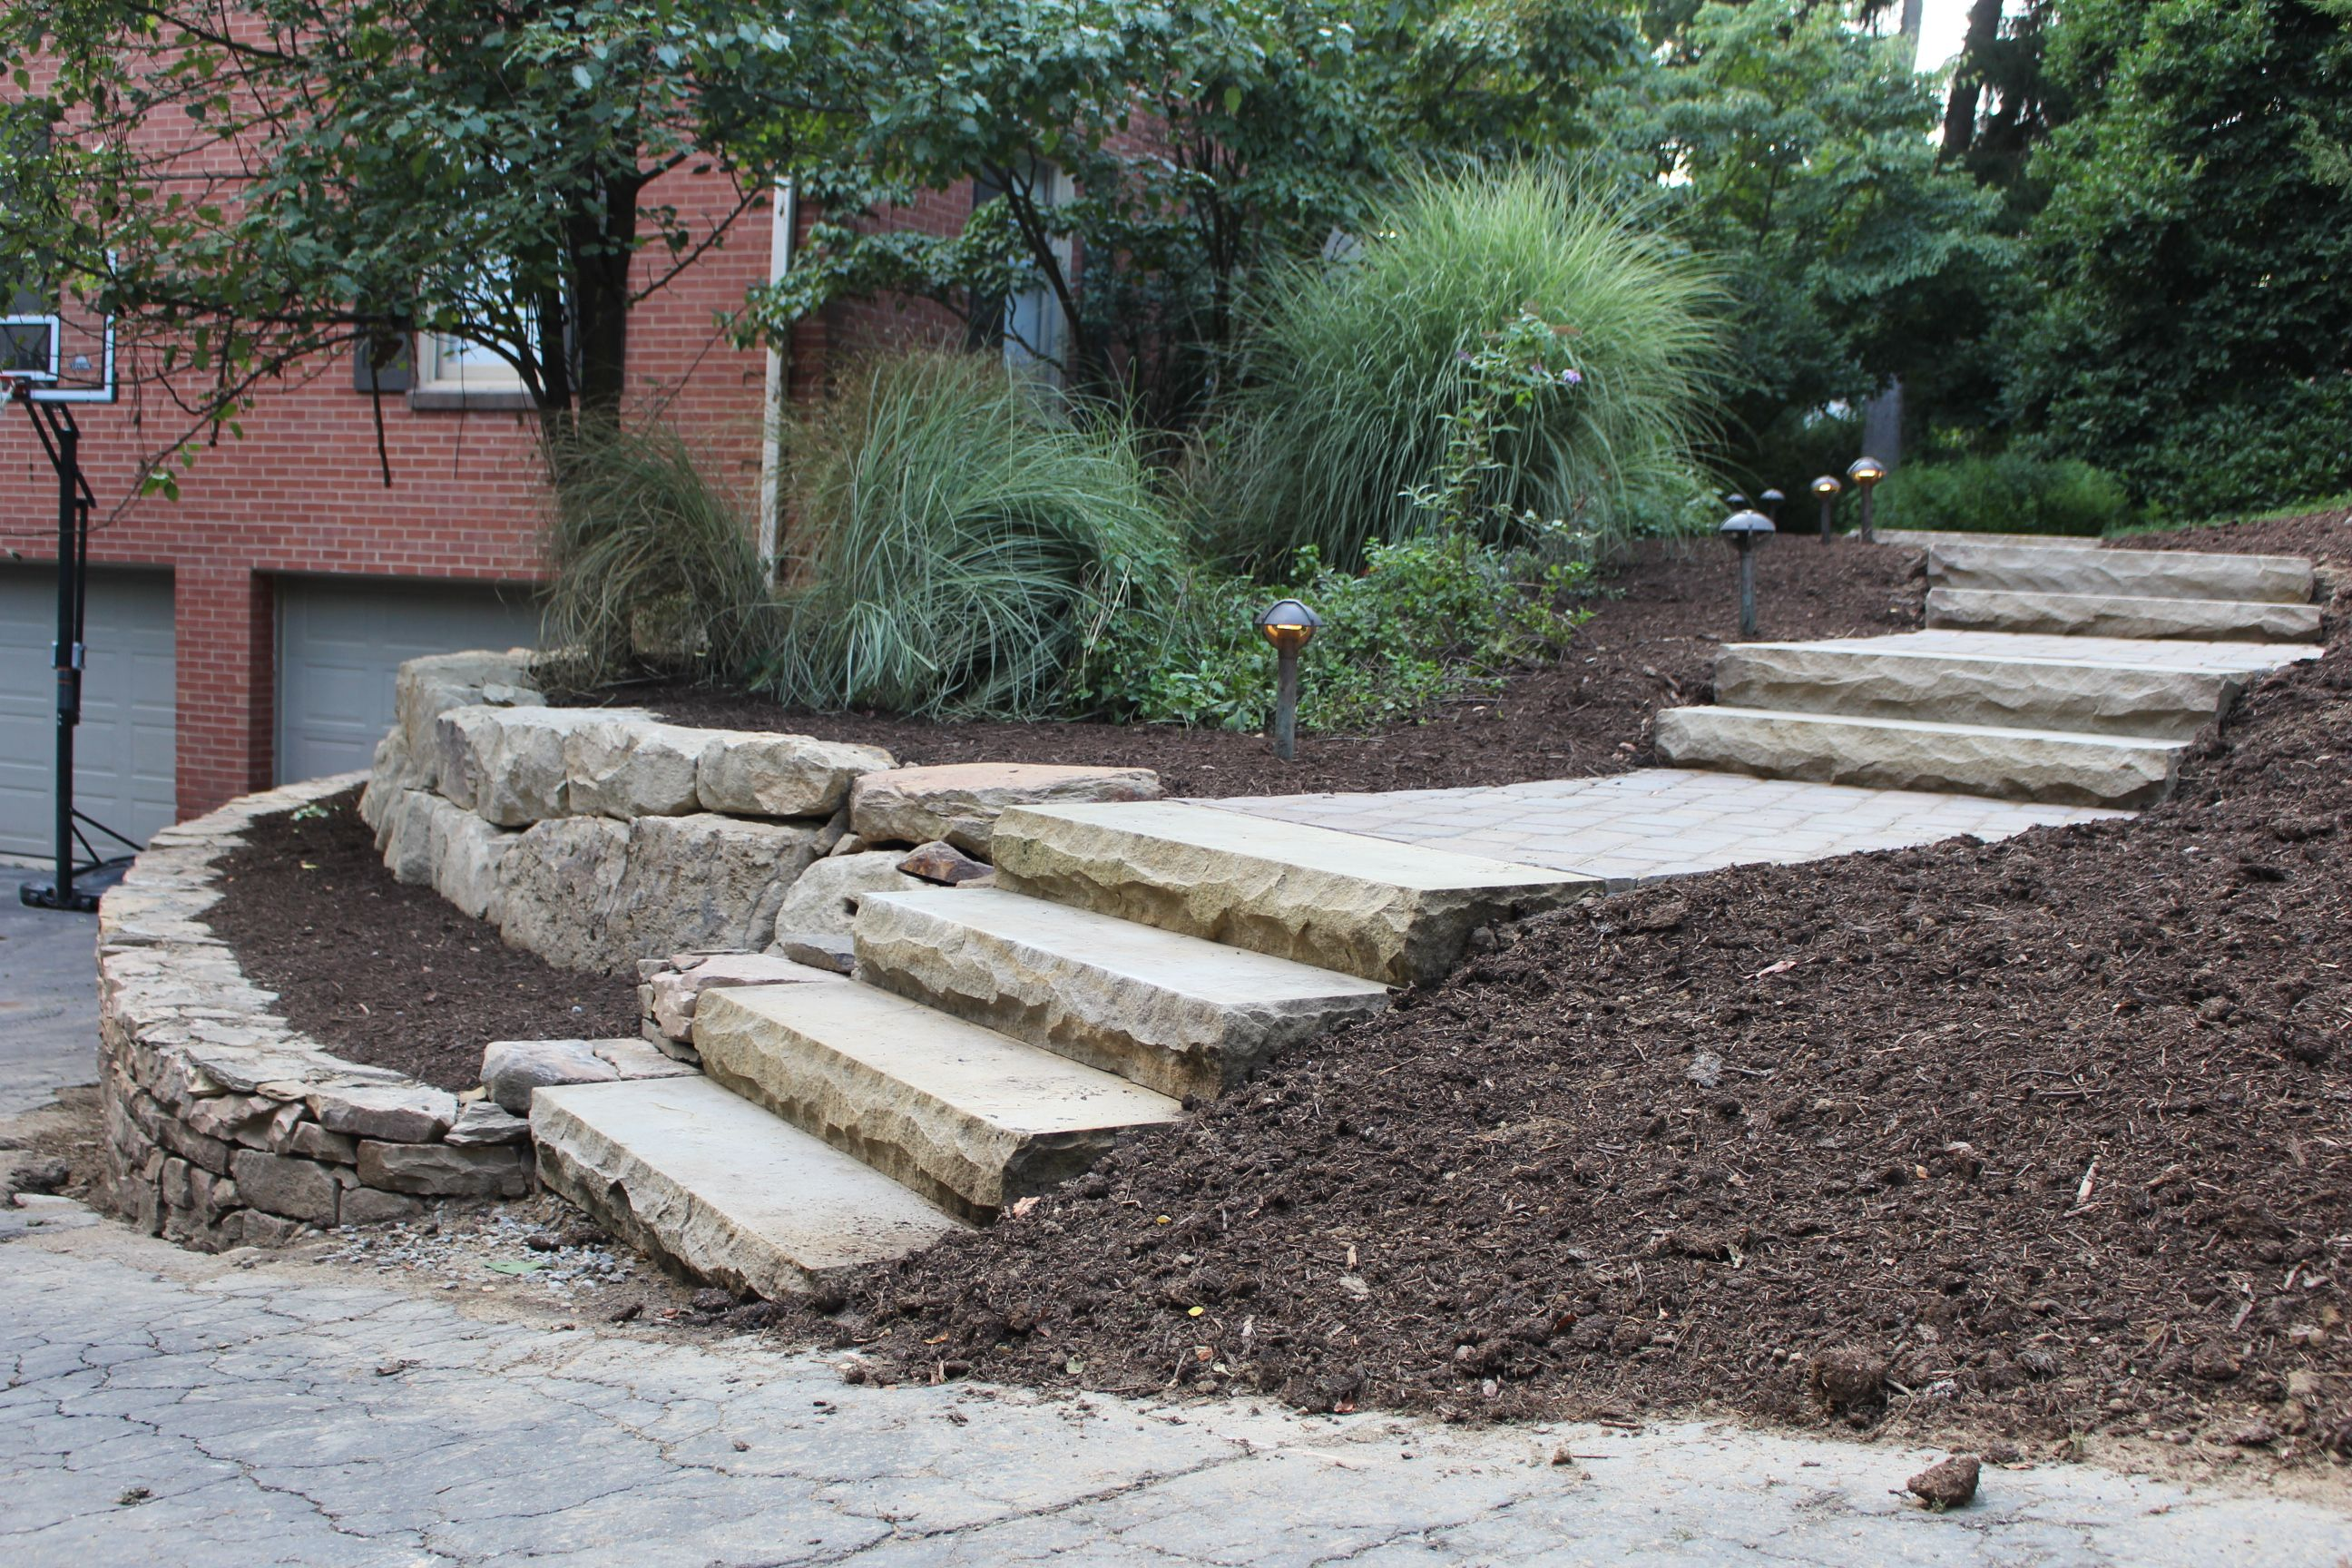 Sandstone Step Treads With A Double Tiered Natural Stone Retaining Wall